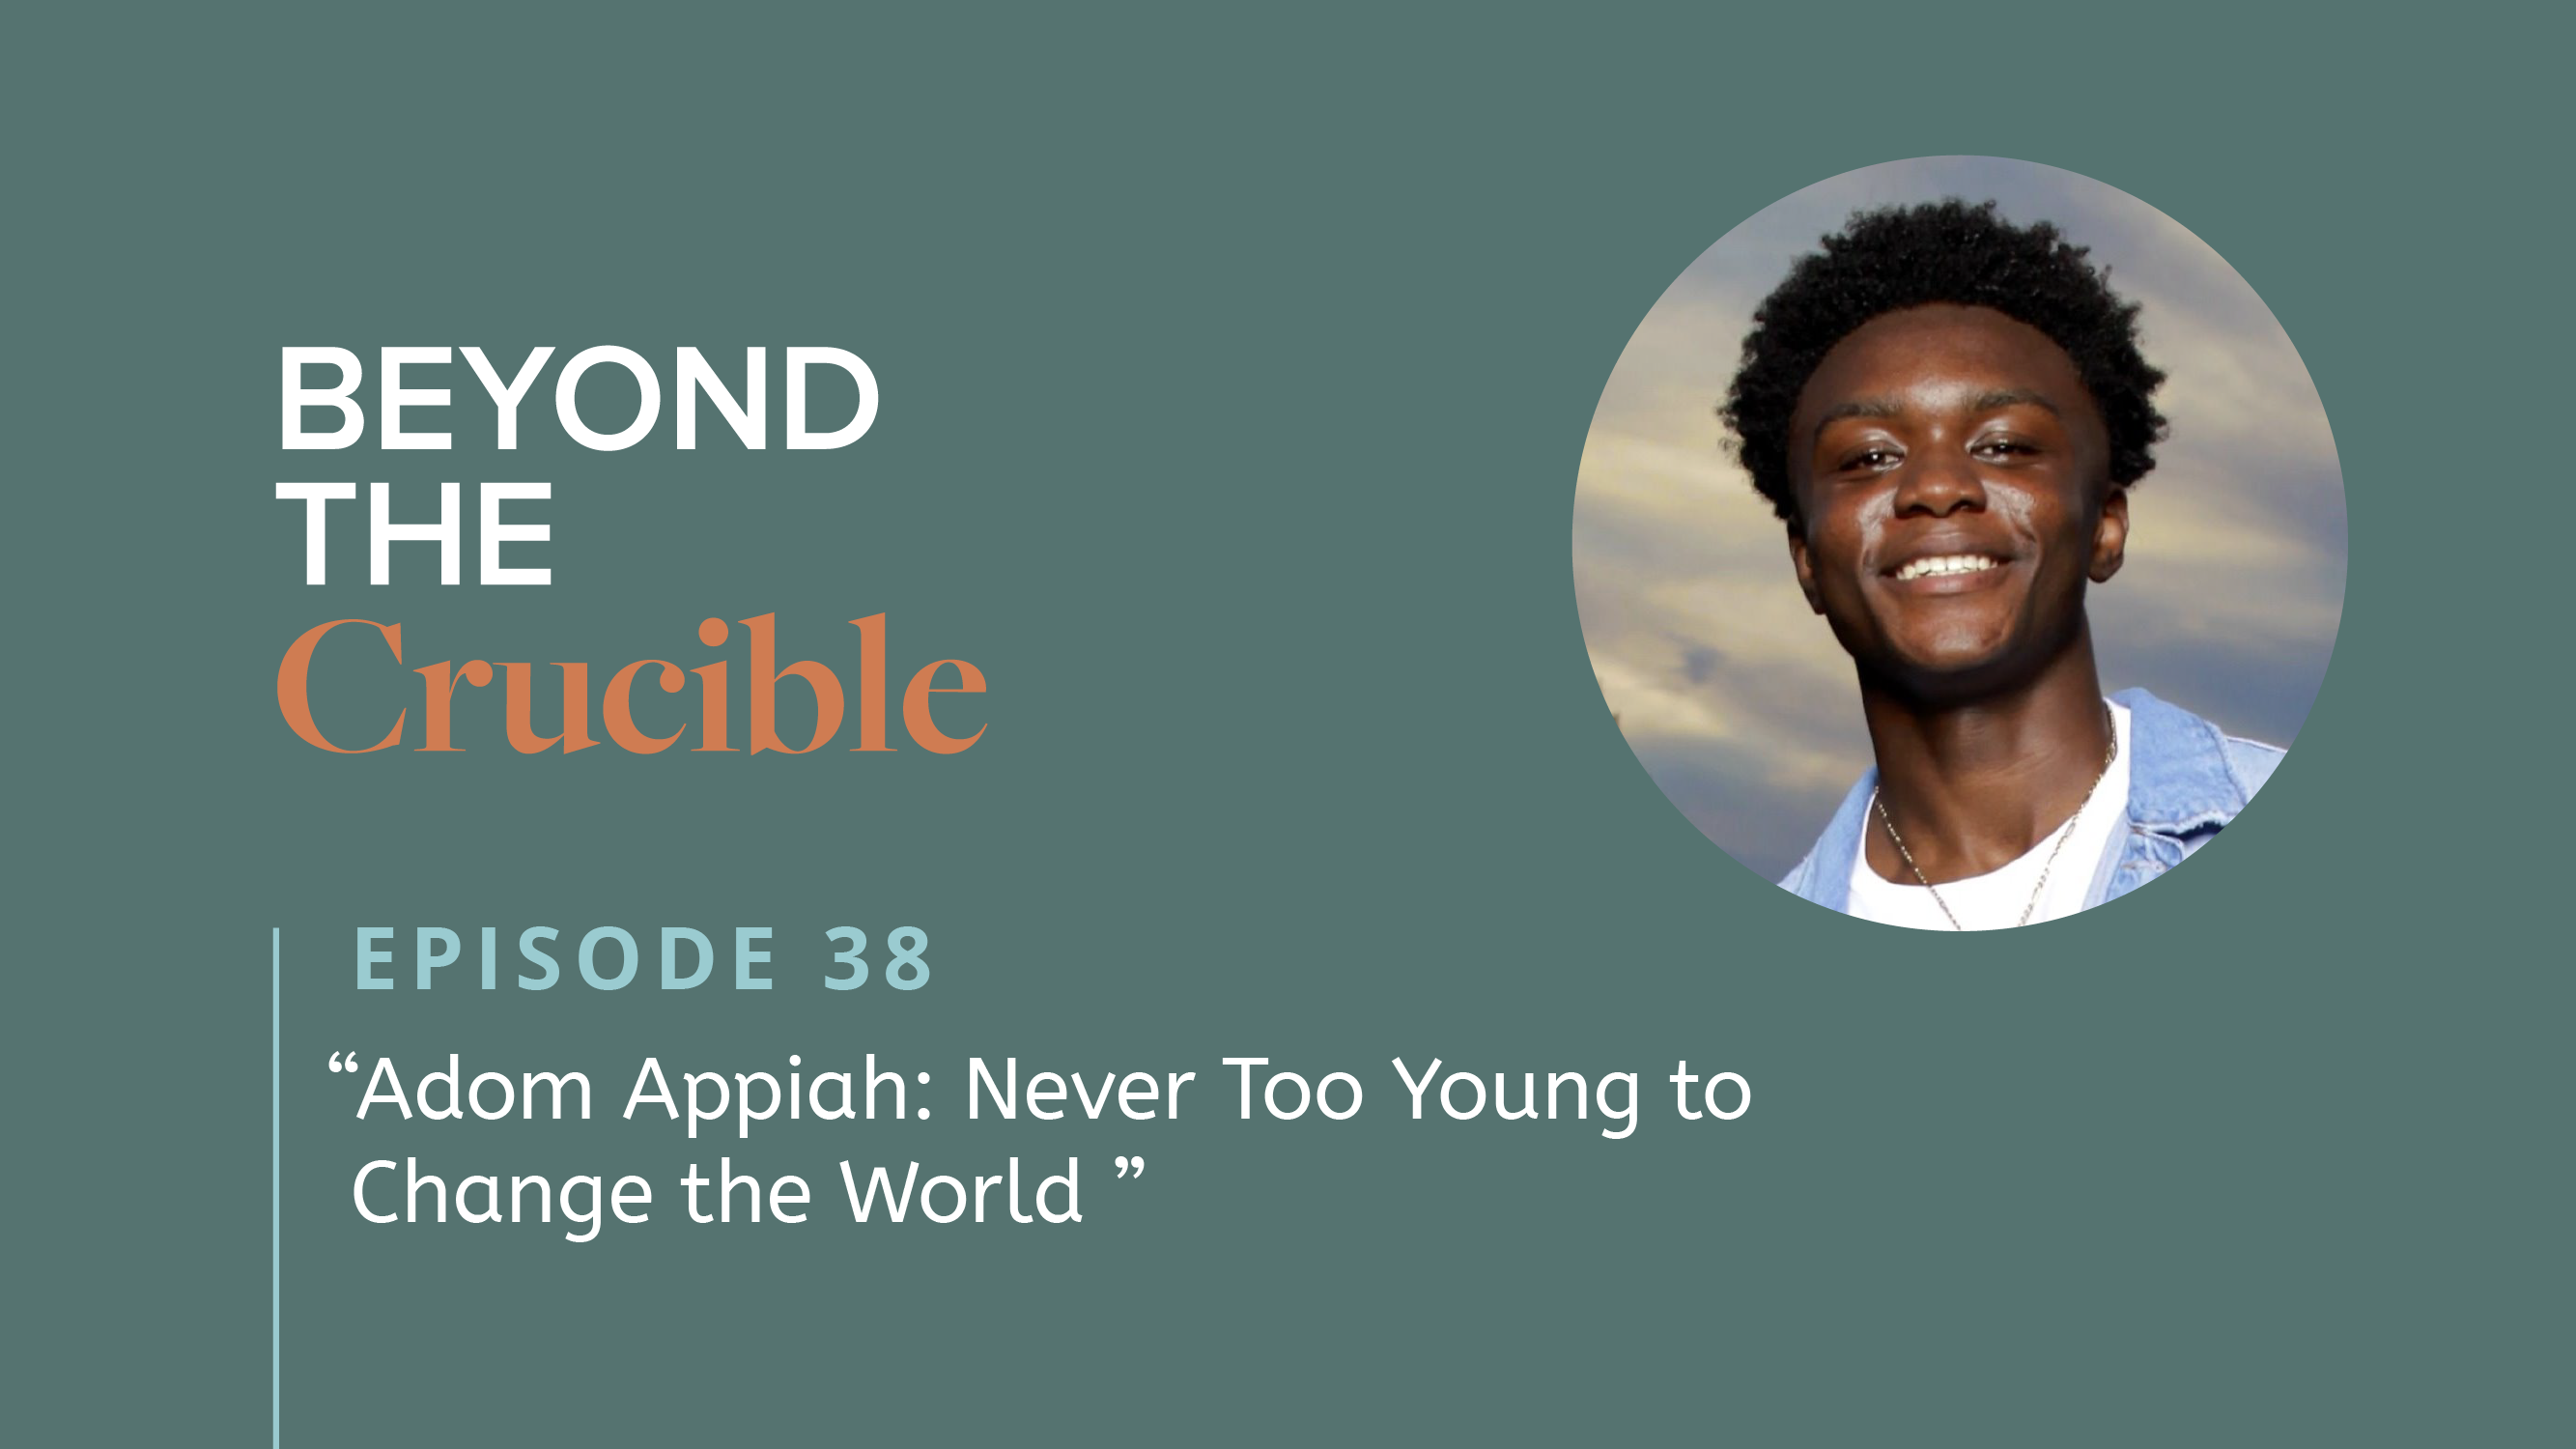 Adom Appiah: Never Too Young to Change the World #38